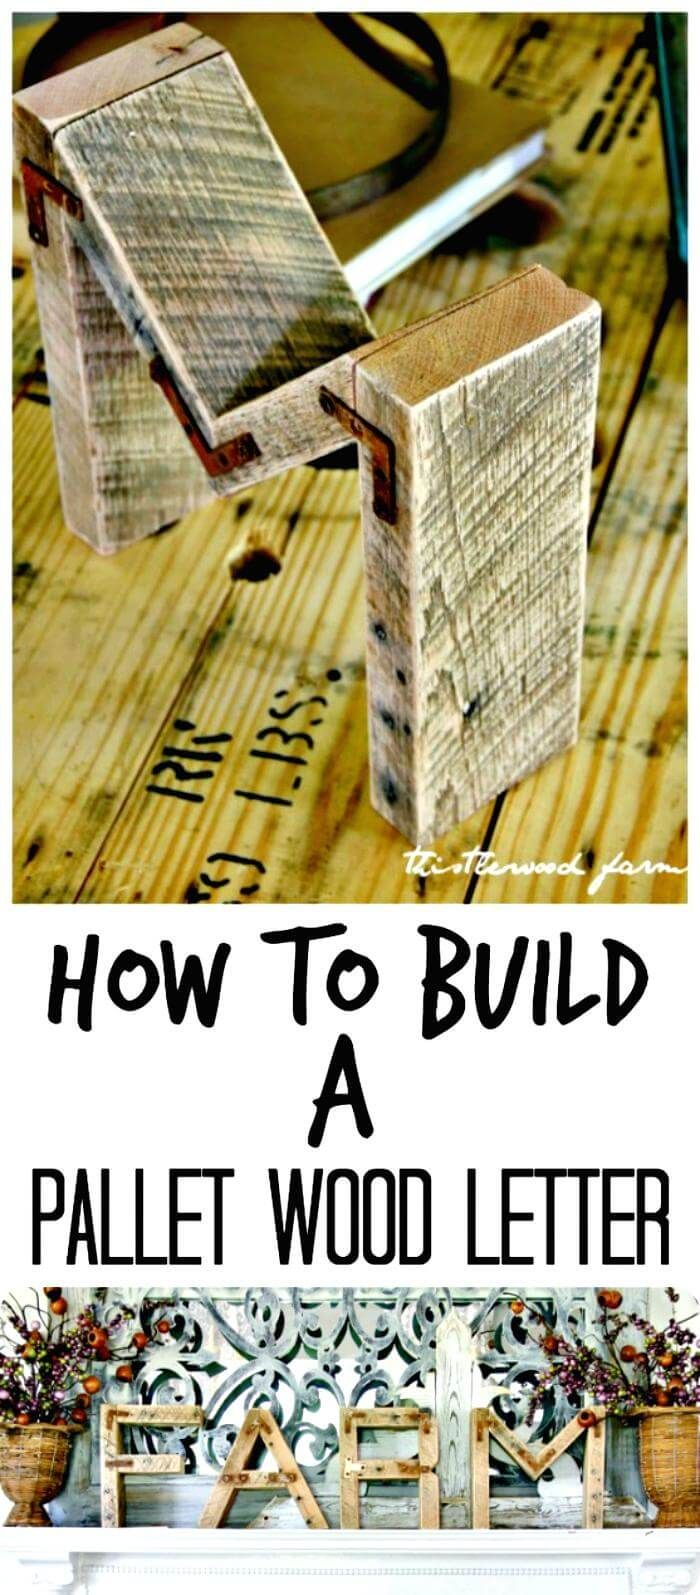 150 Best DIY Pallet Projects and Pallet Furniture Crafts - Page 58 of 75 - DIY & Crafts